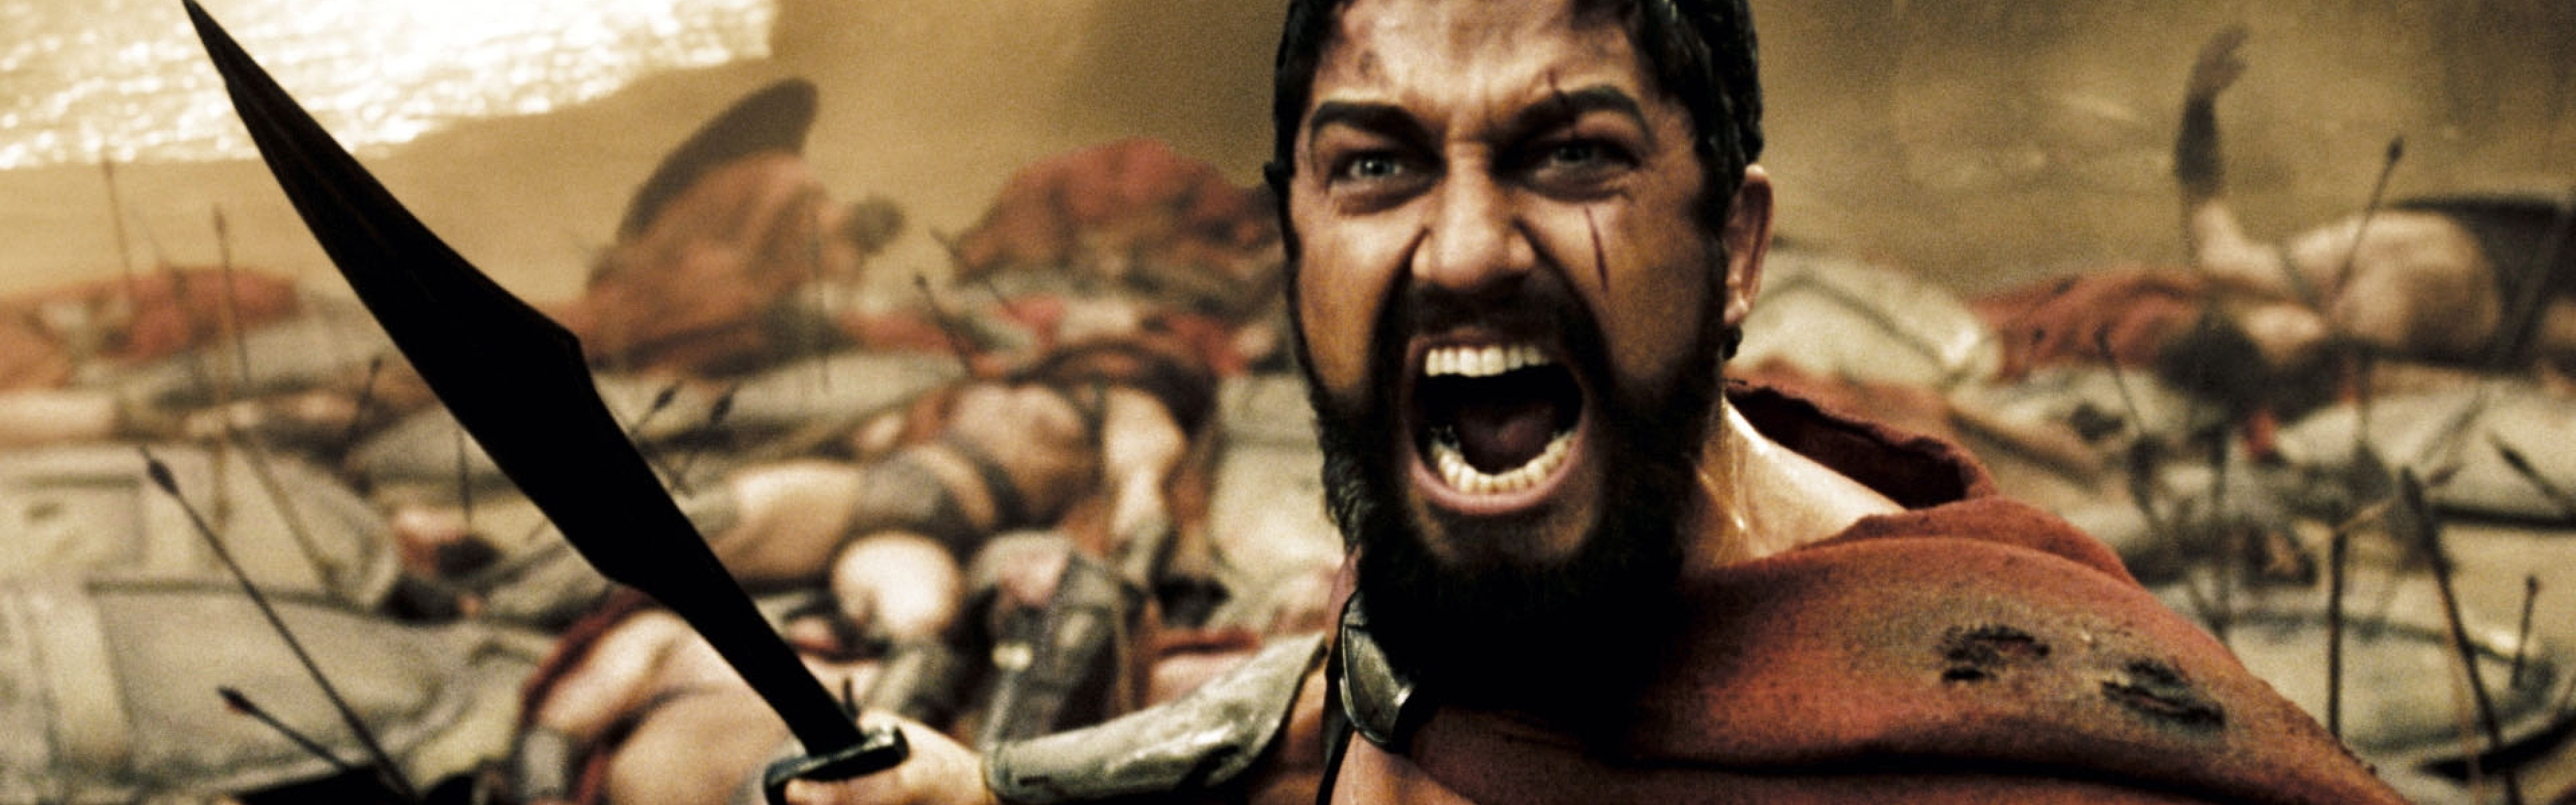 This Is Sparta Wallpapers Hd Backgrounds